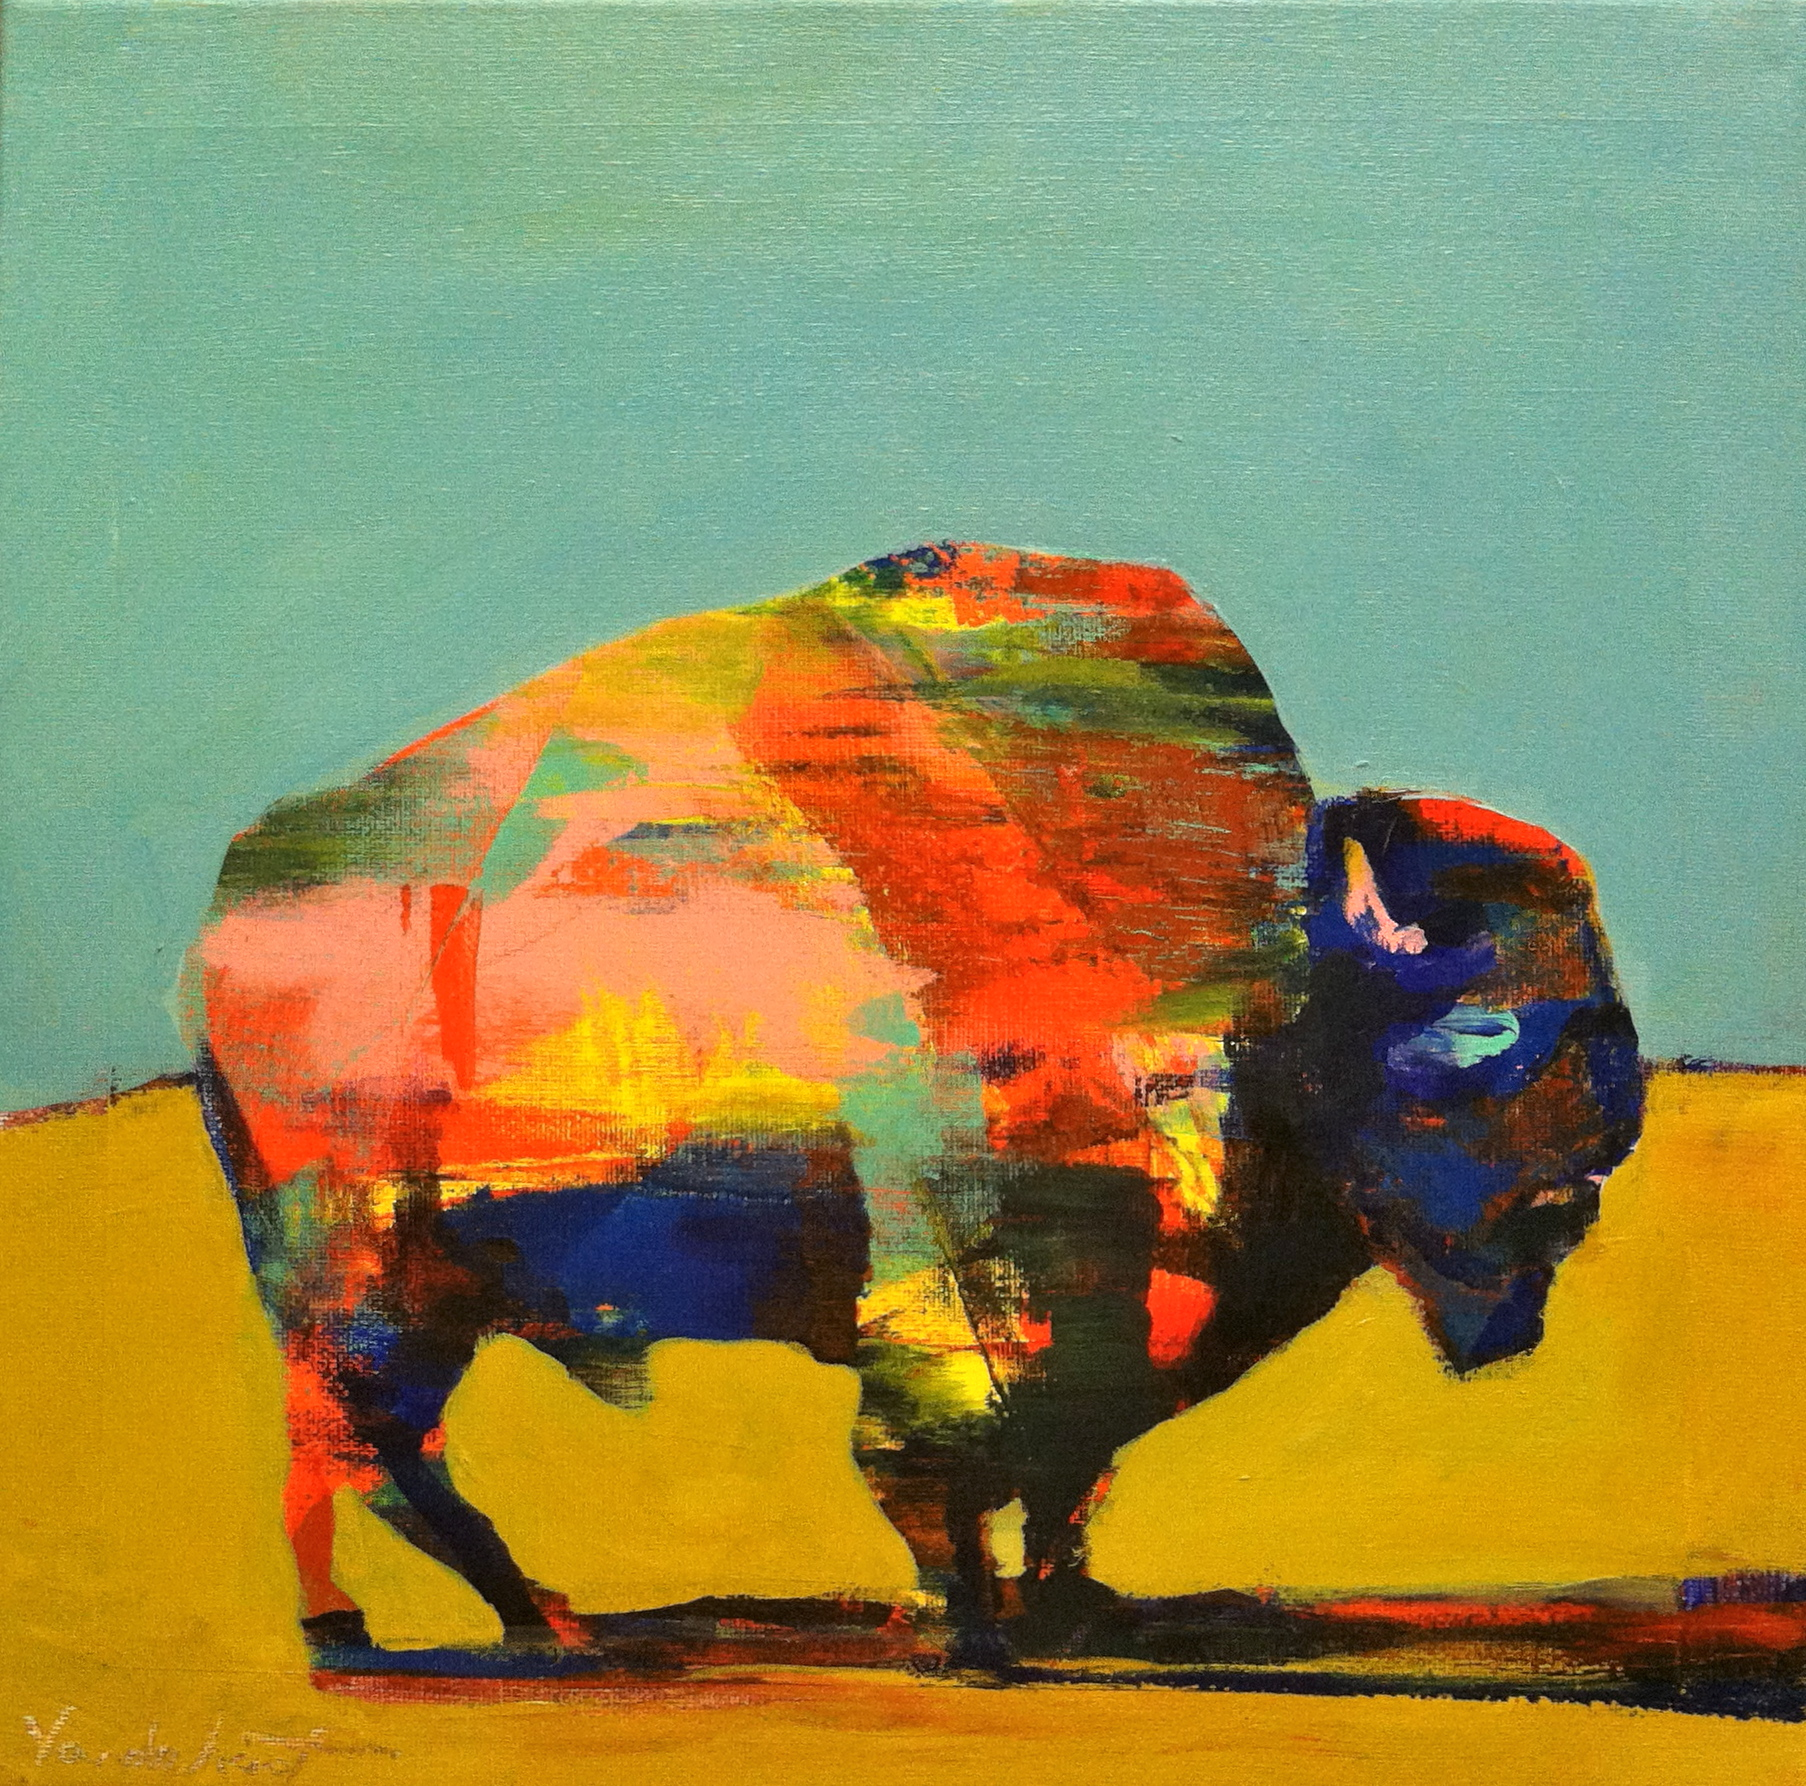 Bison #1, acrylic on canvas, 12x12 inches, 2015